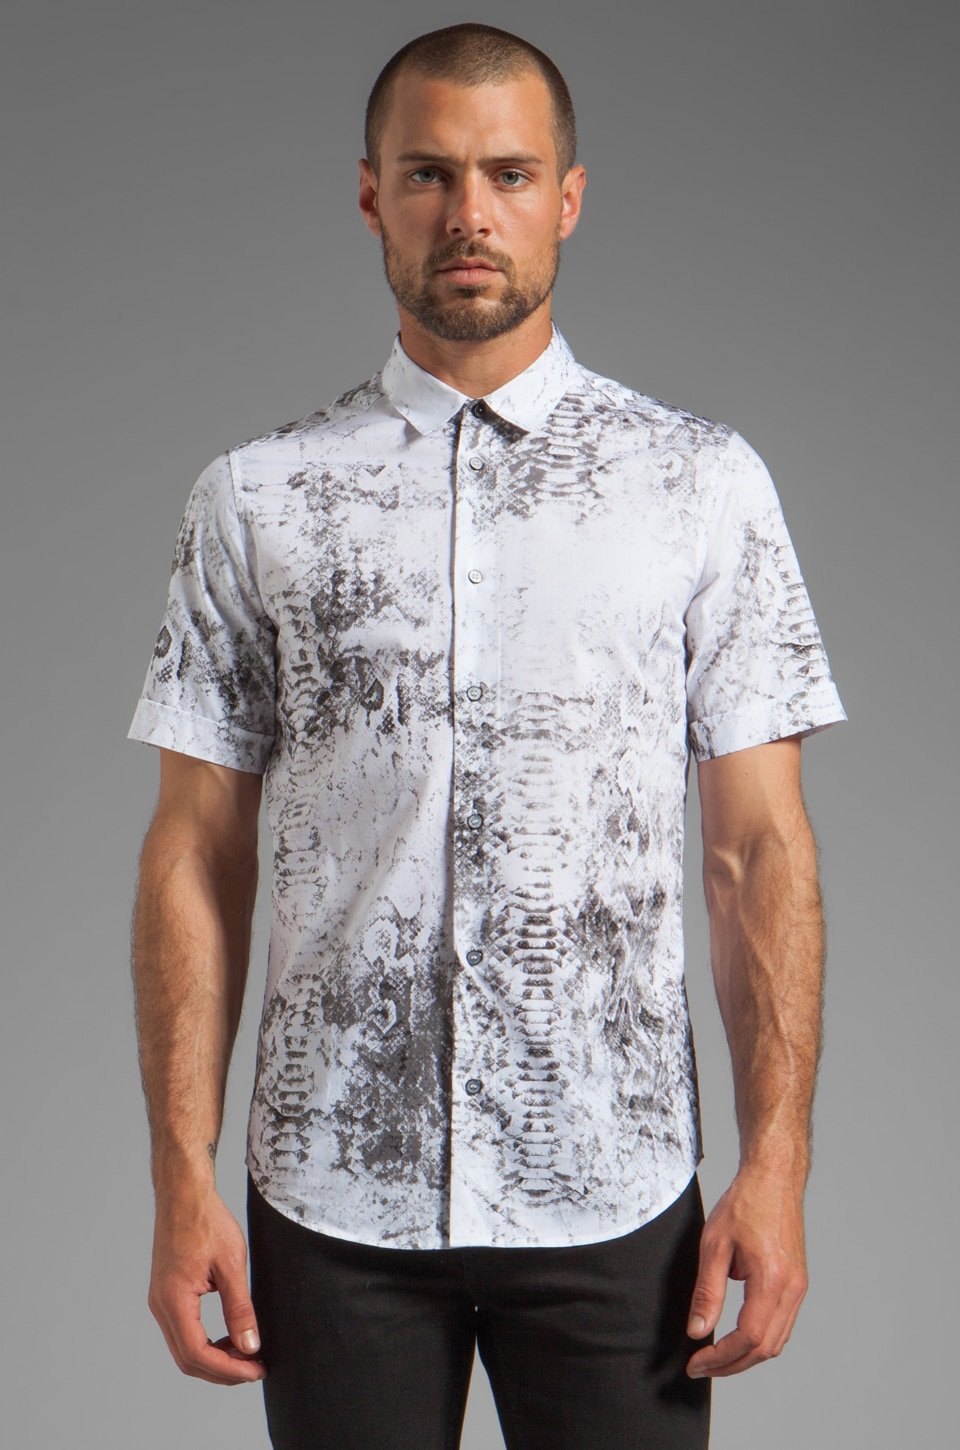 Sons of Heroes Snakeskin Shirt in White/Snakeskin